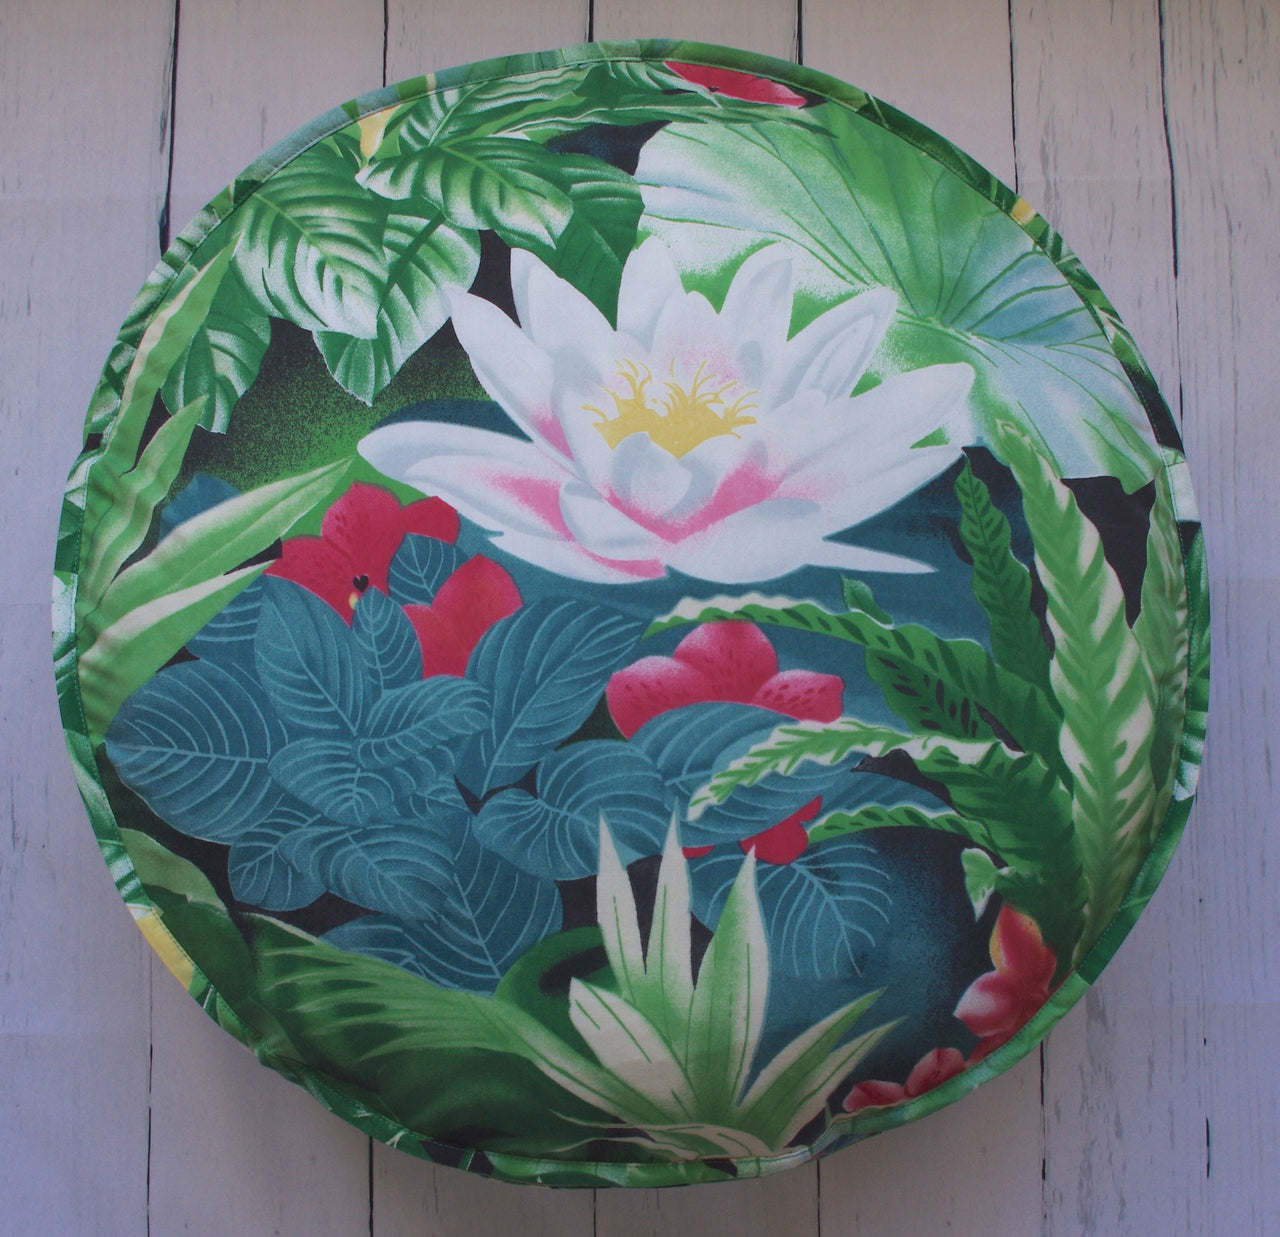 hilary-hope-round-floor-pouf-jungle-o-front